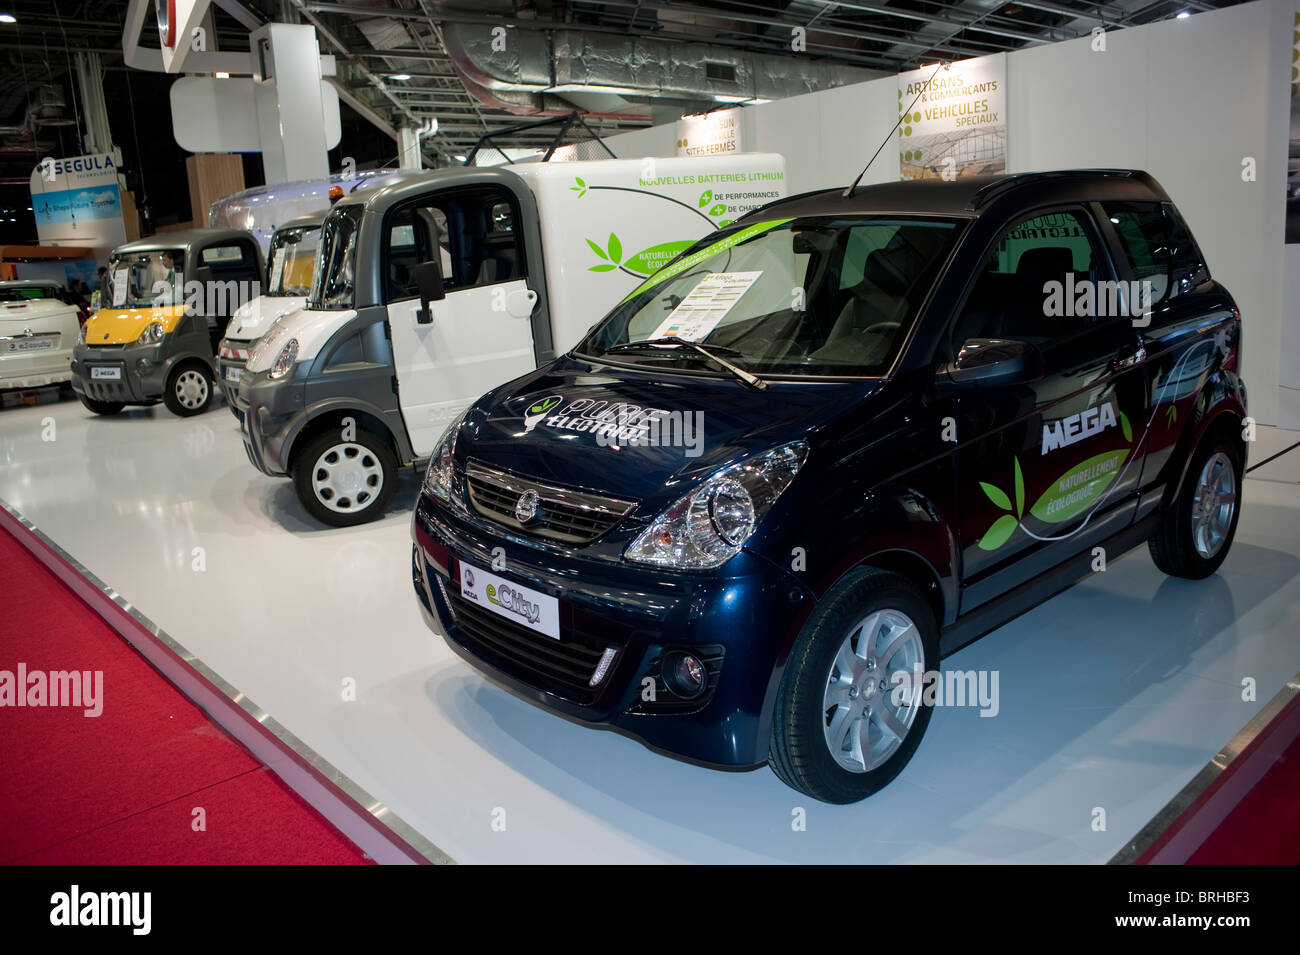 paris france paris car show small electric cars mega corp products on display